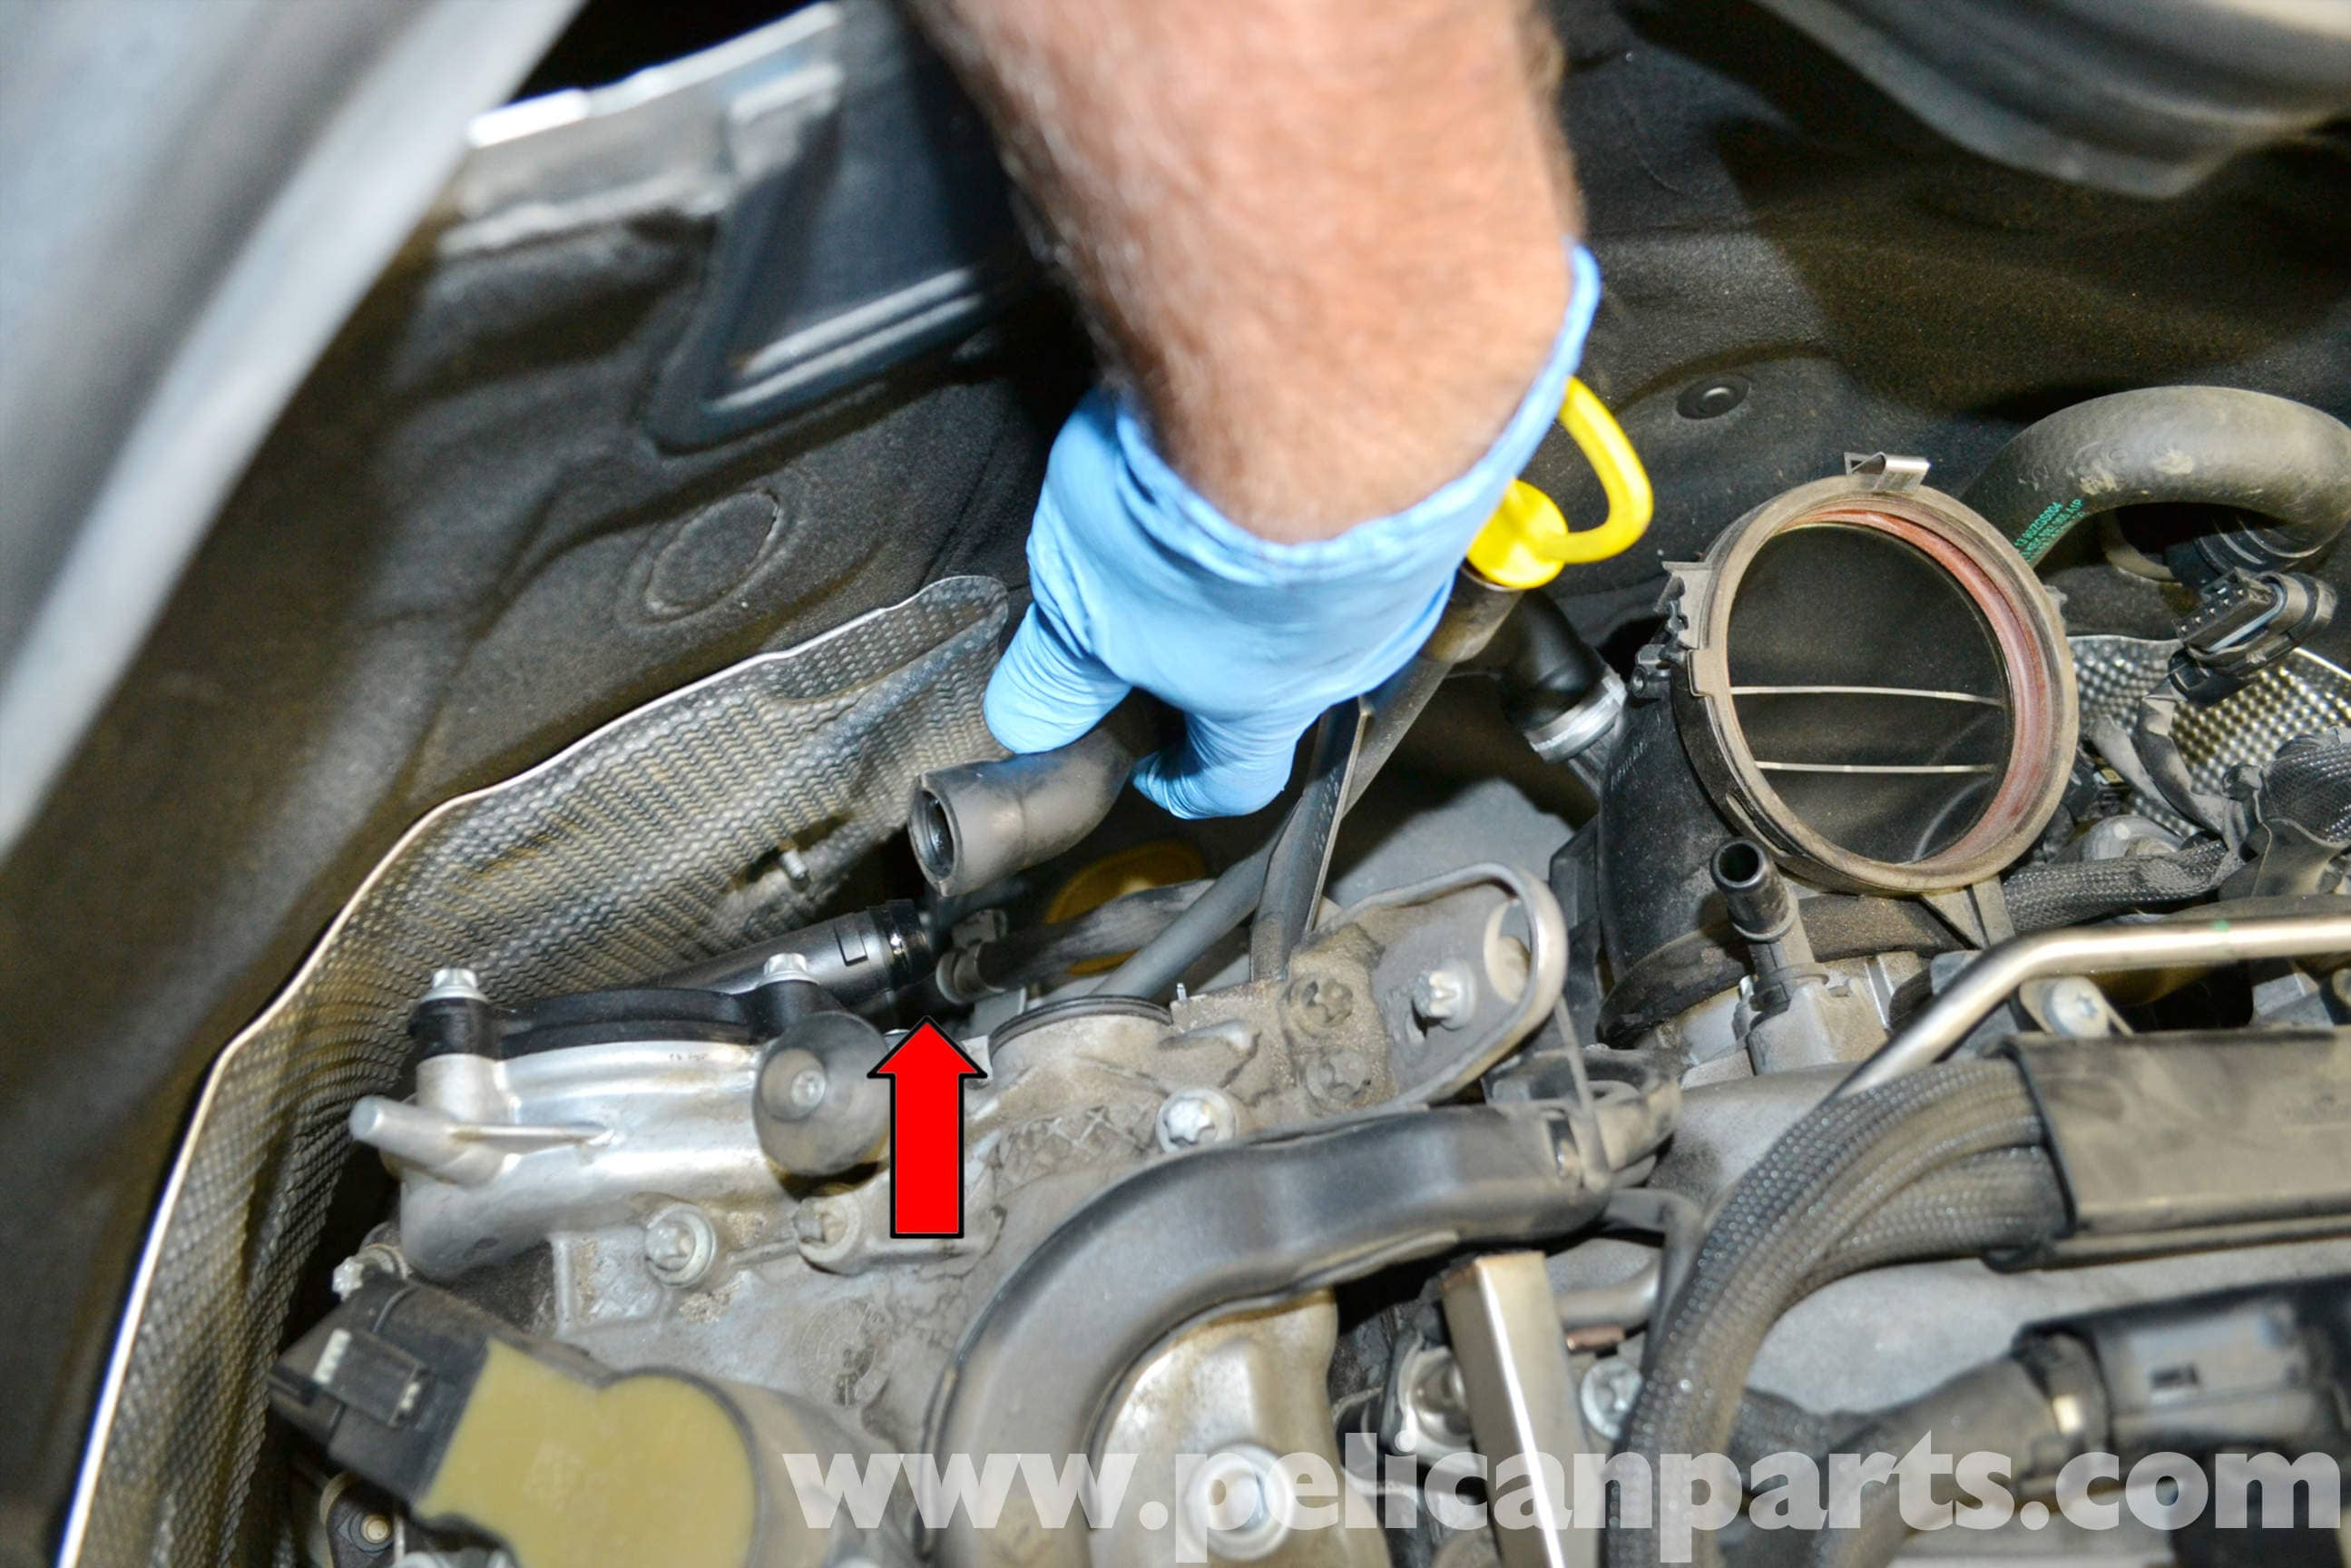 Mercedes Benz W204 Throttle Body Cleaning 2008 2014